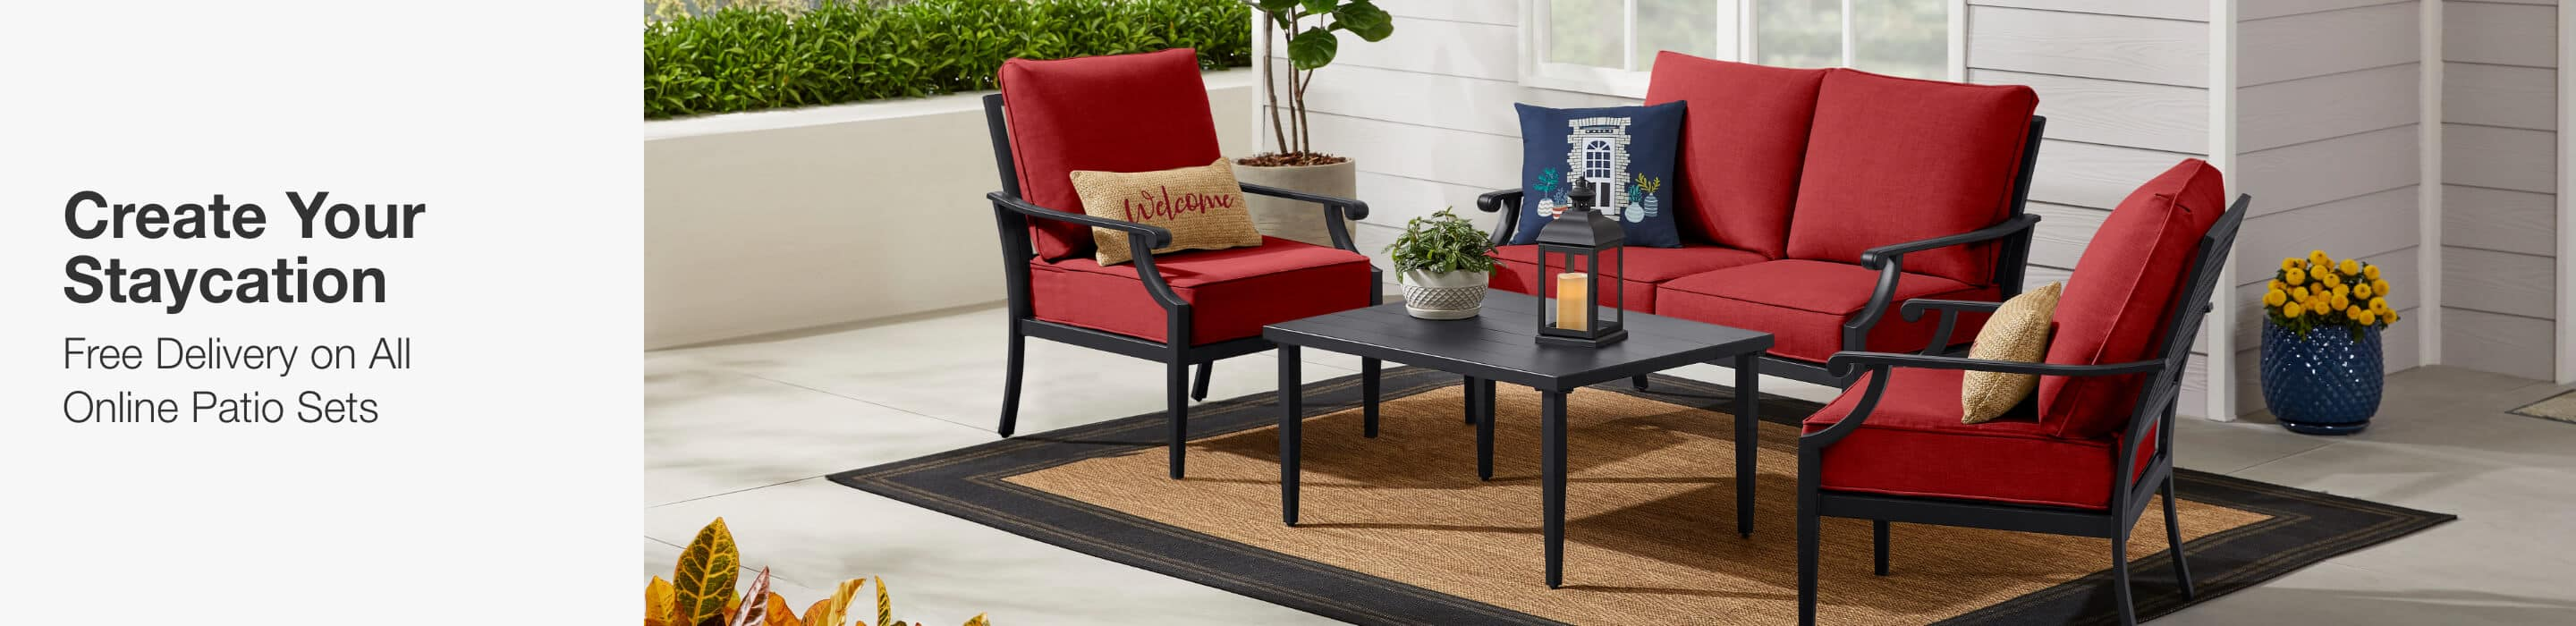 CREATE YOUR STAYCATION - Free Delivery on All Online Patio Sets